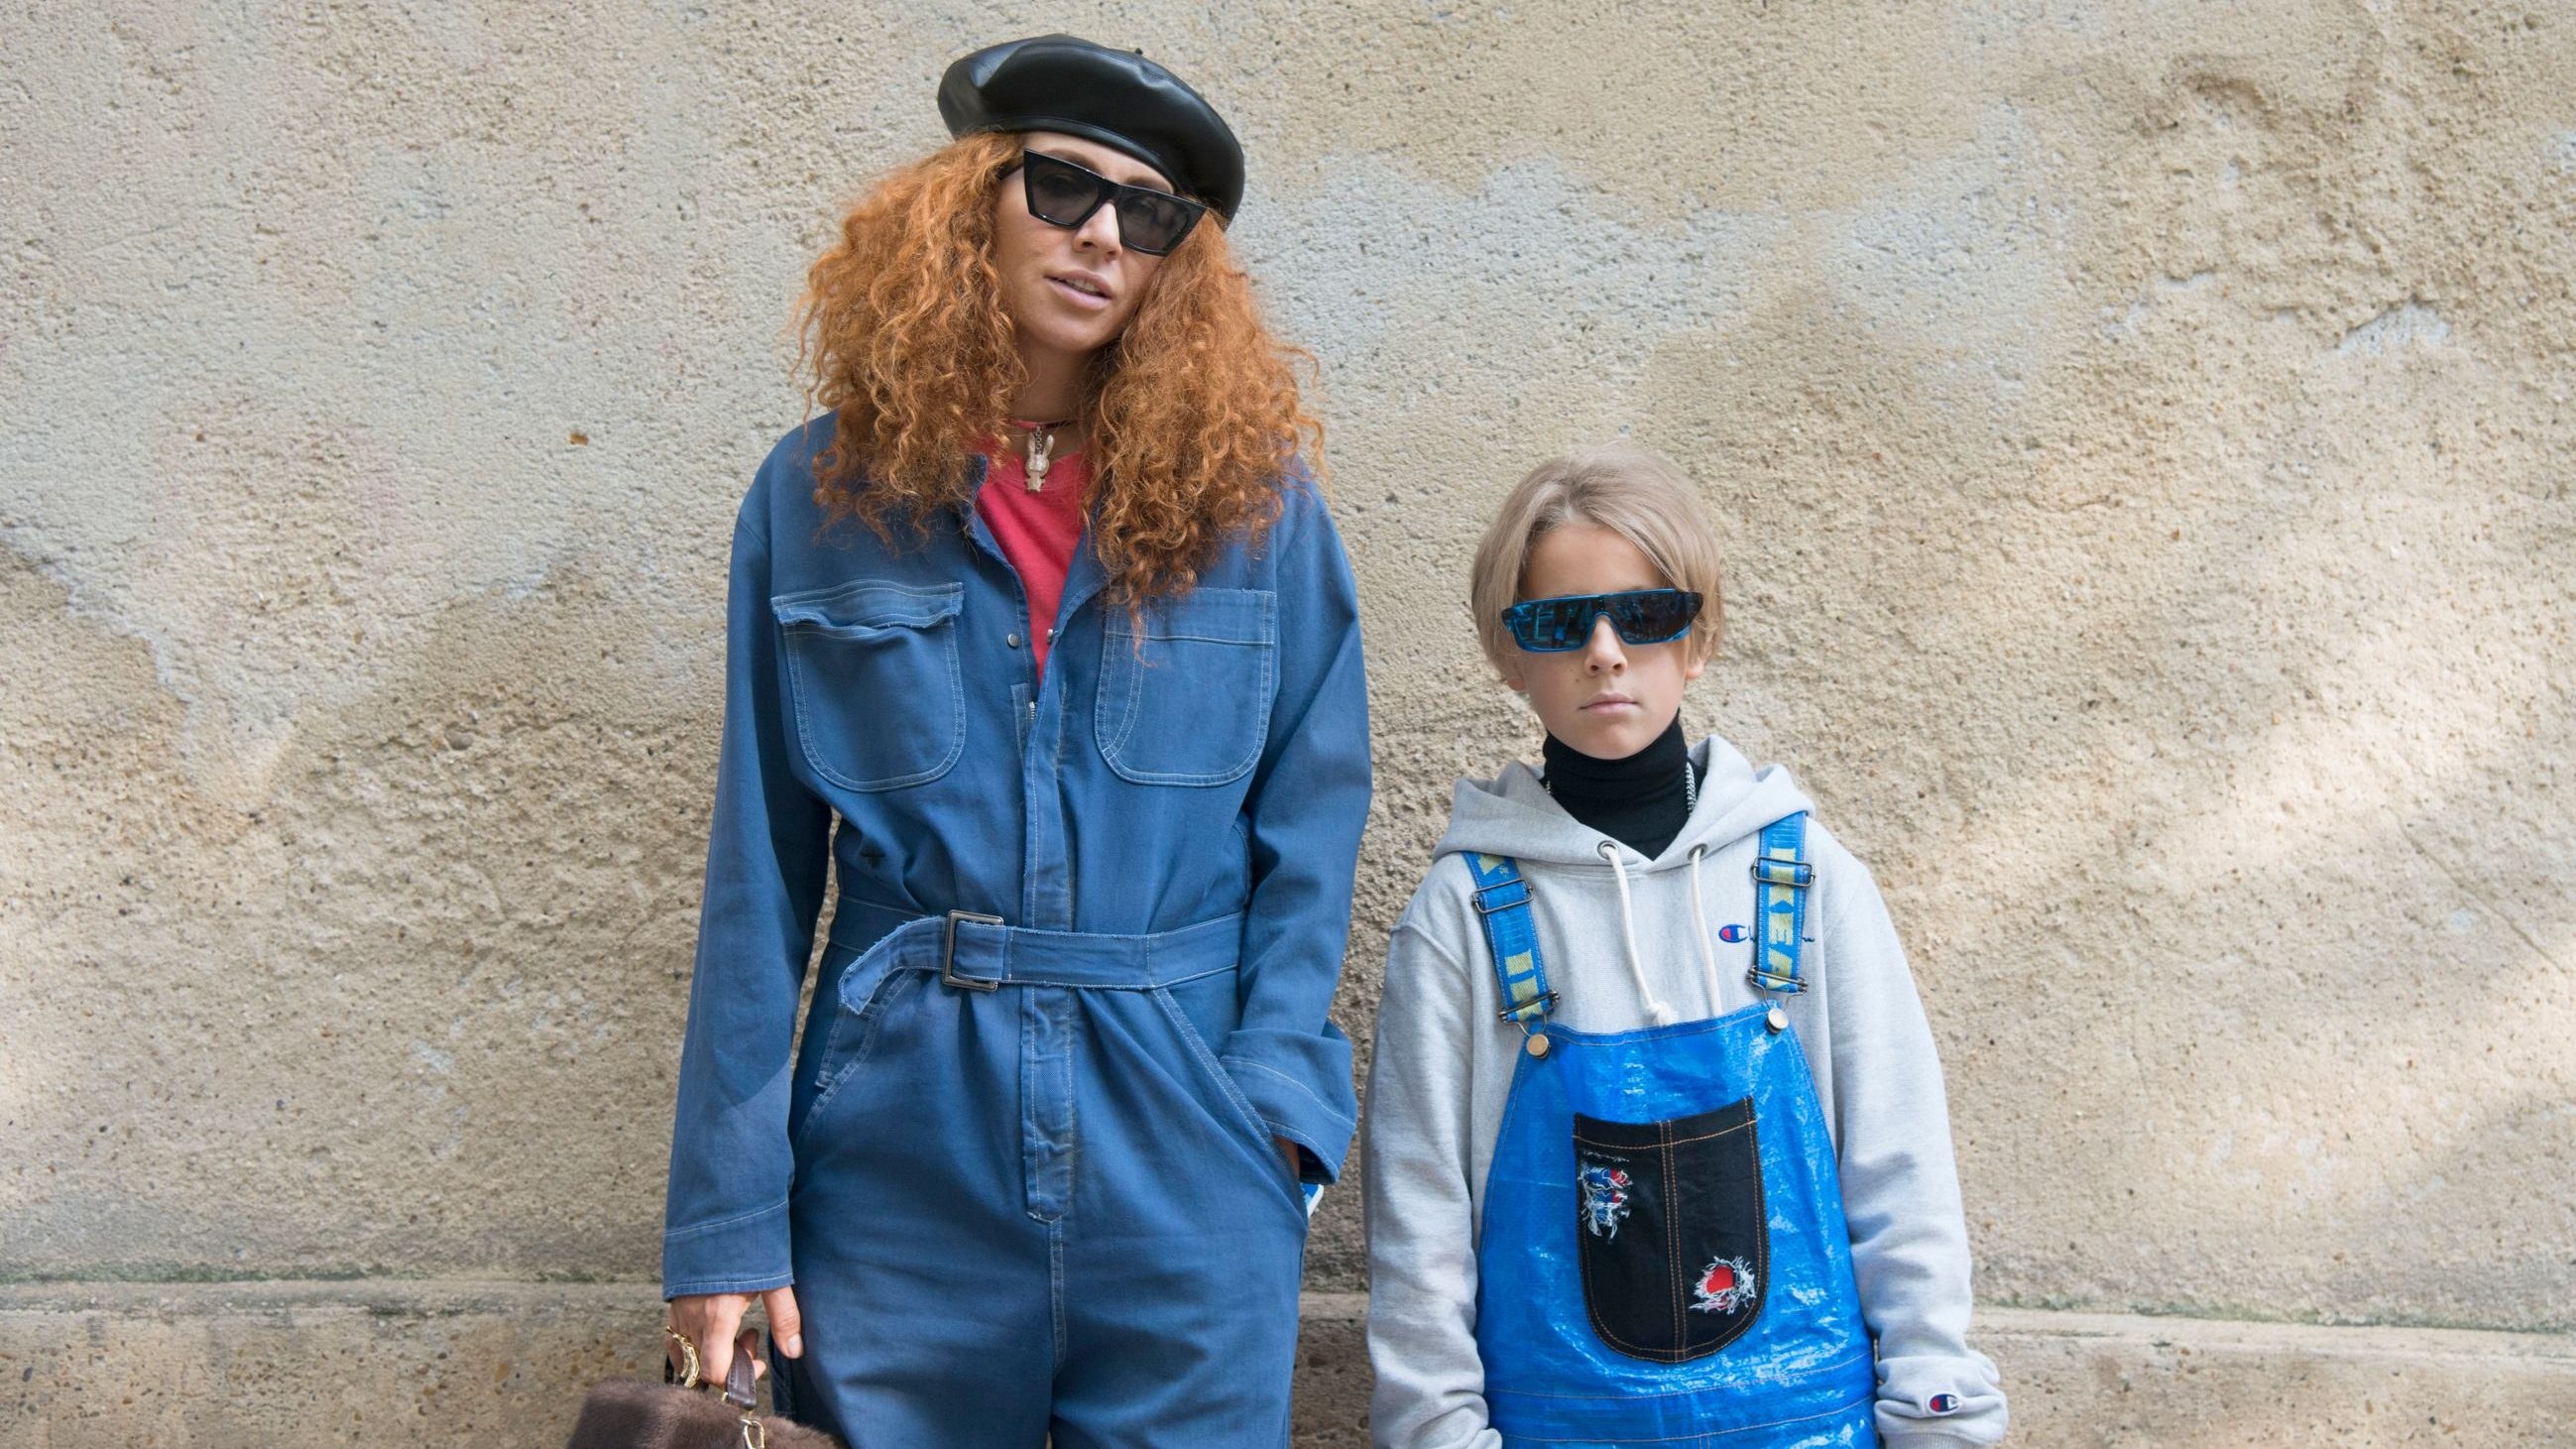 PARIS, FRANCE - SEPTEMBER 26 : Jewellery designer Natasha Zinko wears a Dior jumpsuit, Celine sunglasses and Natasha Zinko bag and jewellery with Ivan Zinko wears a DIY jumpsuit, Dior x Rihanna sunglasses, Prada turtleneck sweater, Champion hooded top day 1 of Paris Womens Fashion Week Spring/Summer 2018, on September 26, 2017 in London, England. (Photo by Kirstin Sinclair/Getty Images)